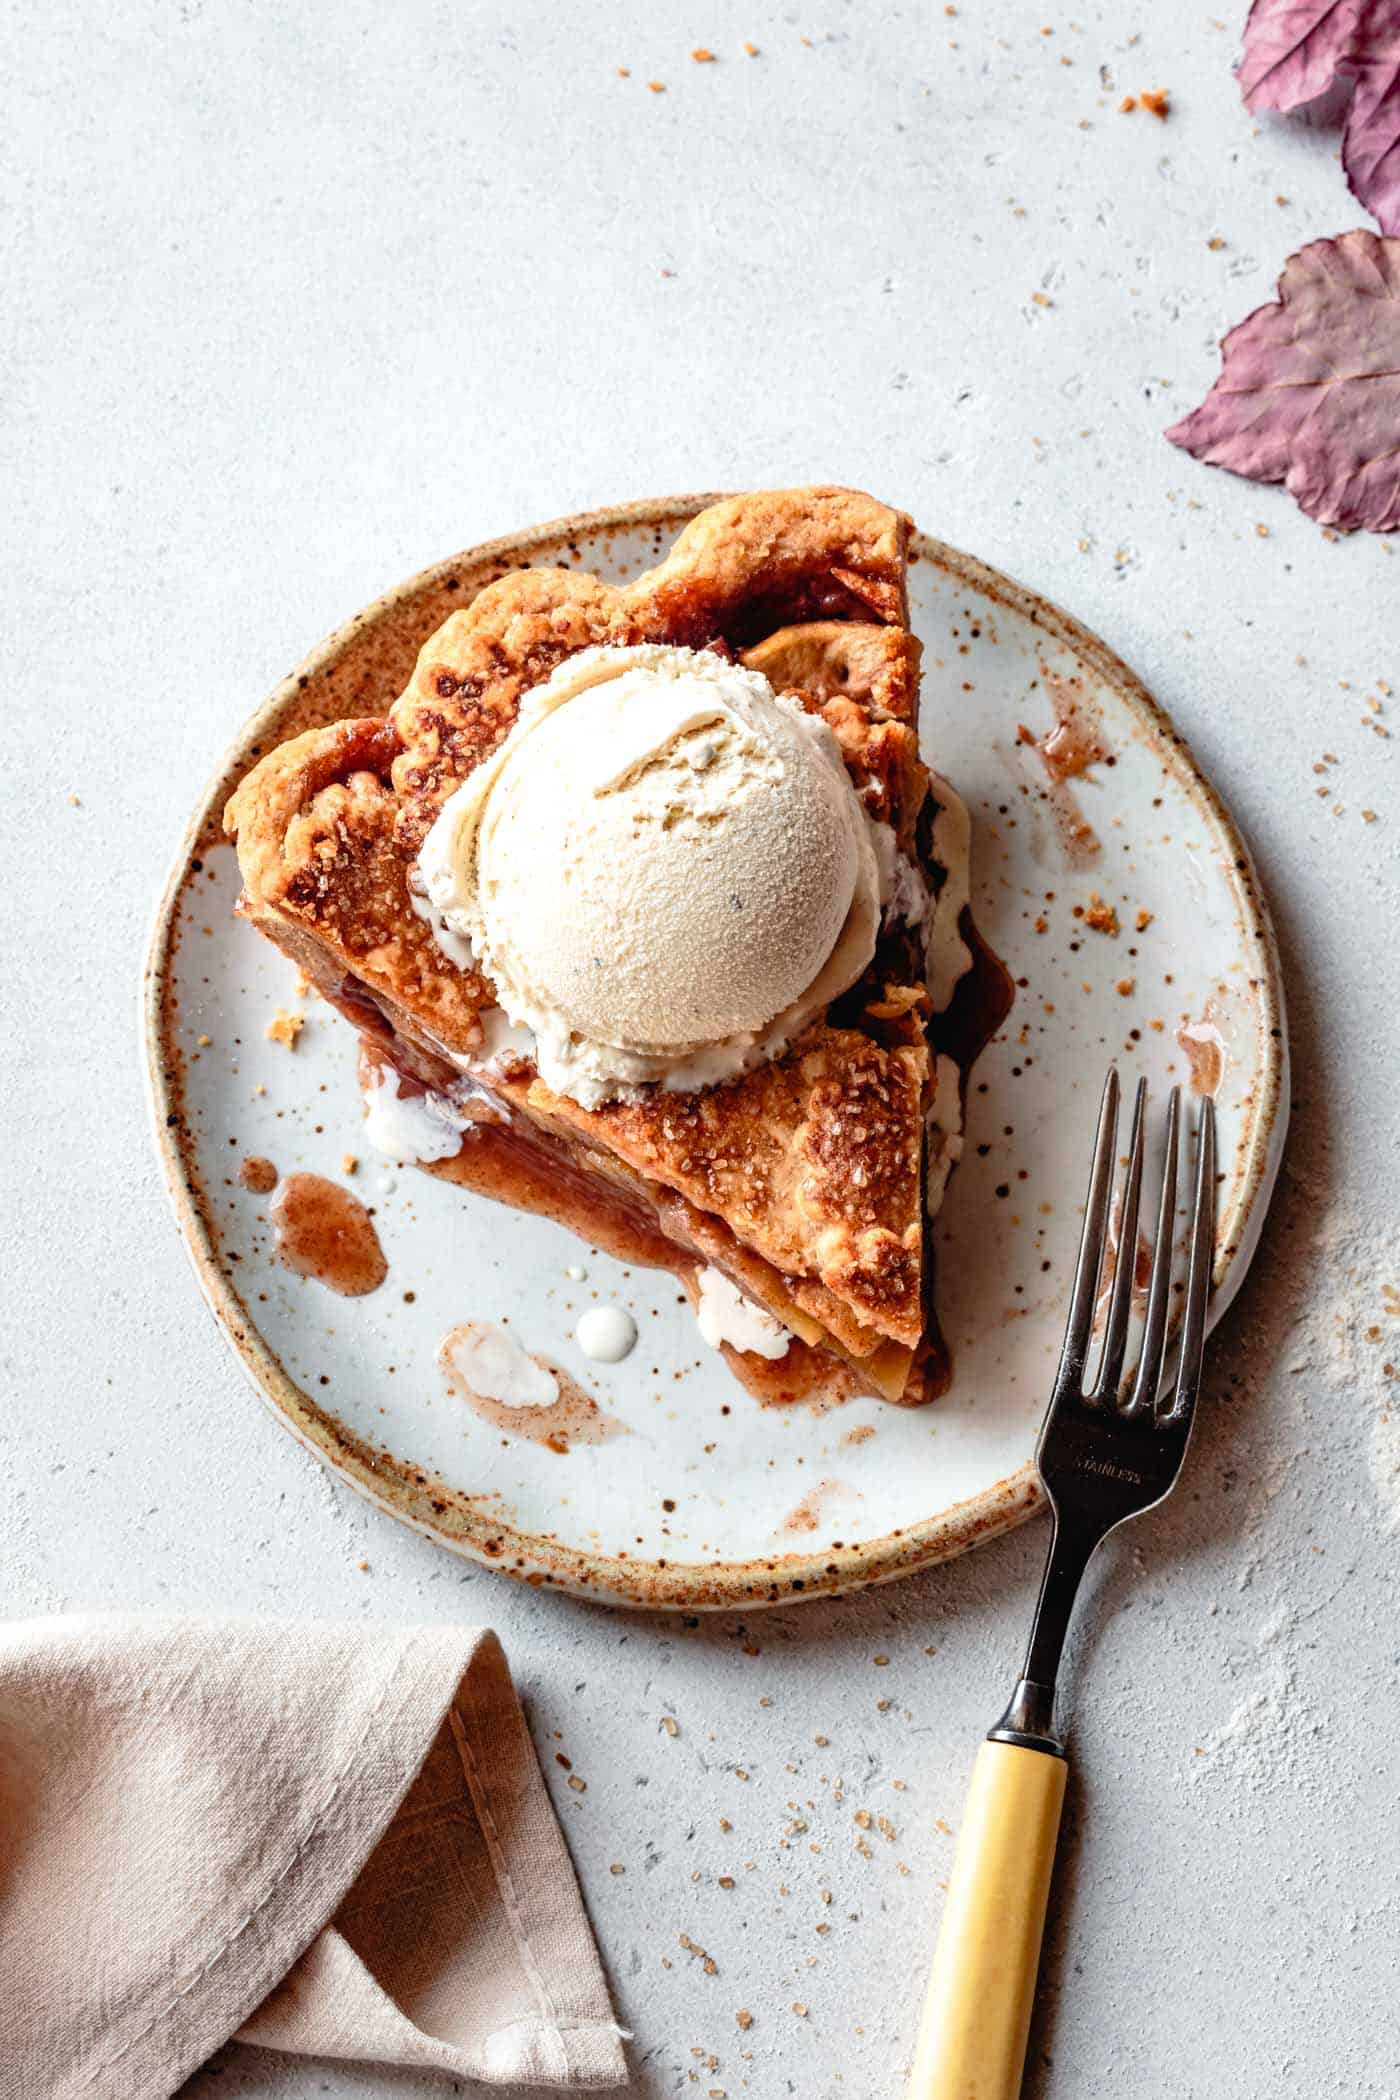 a slice of gluten-free apple pie on a plate with ice cream